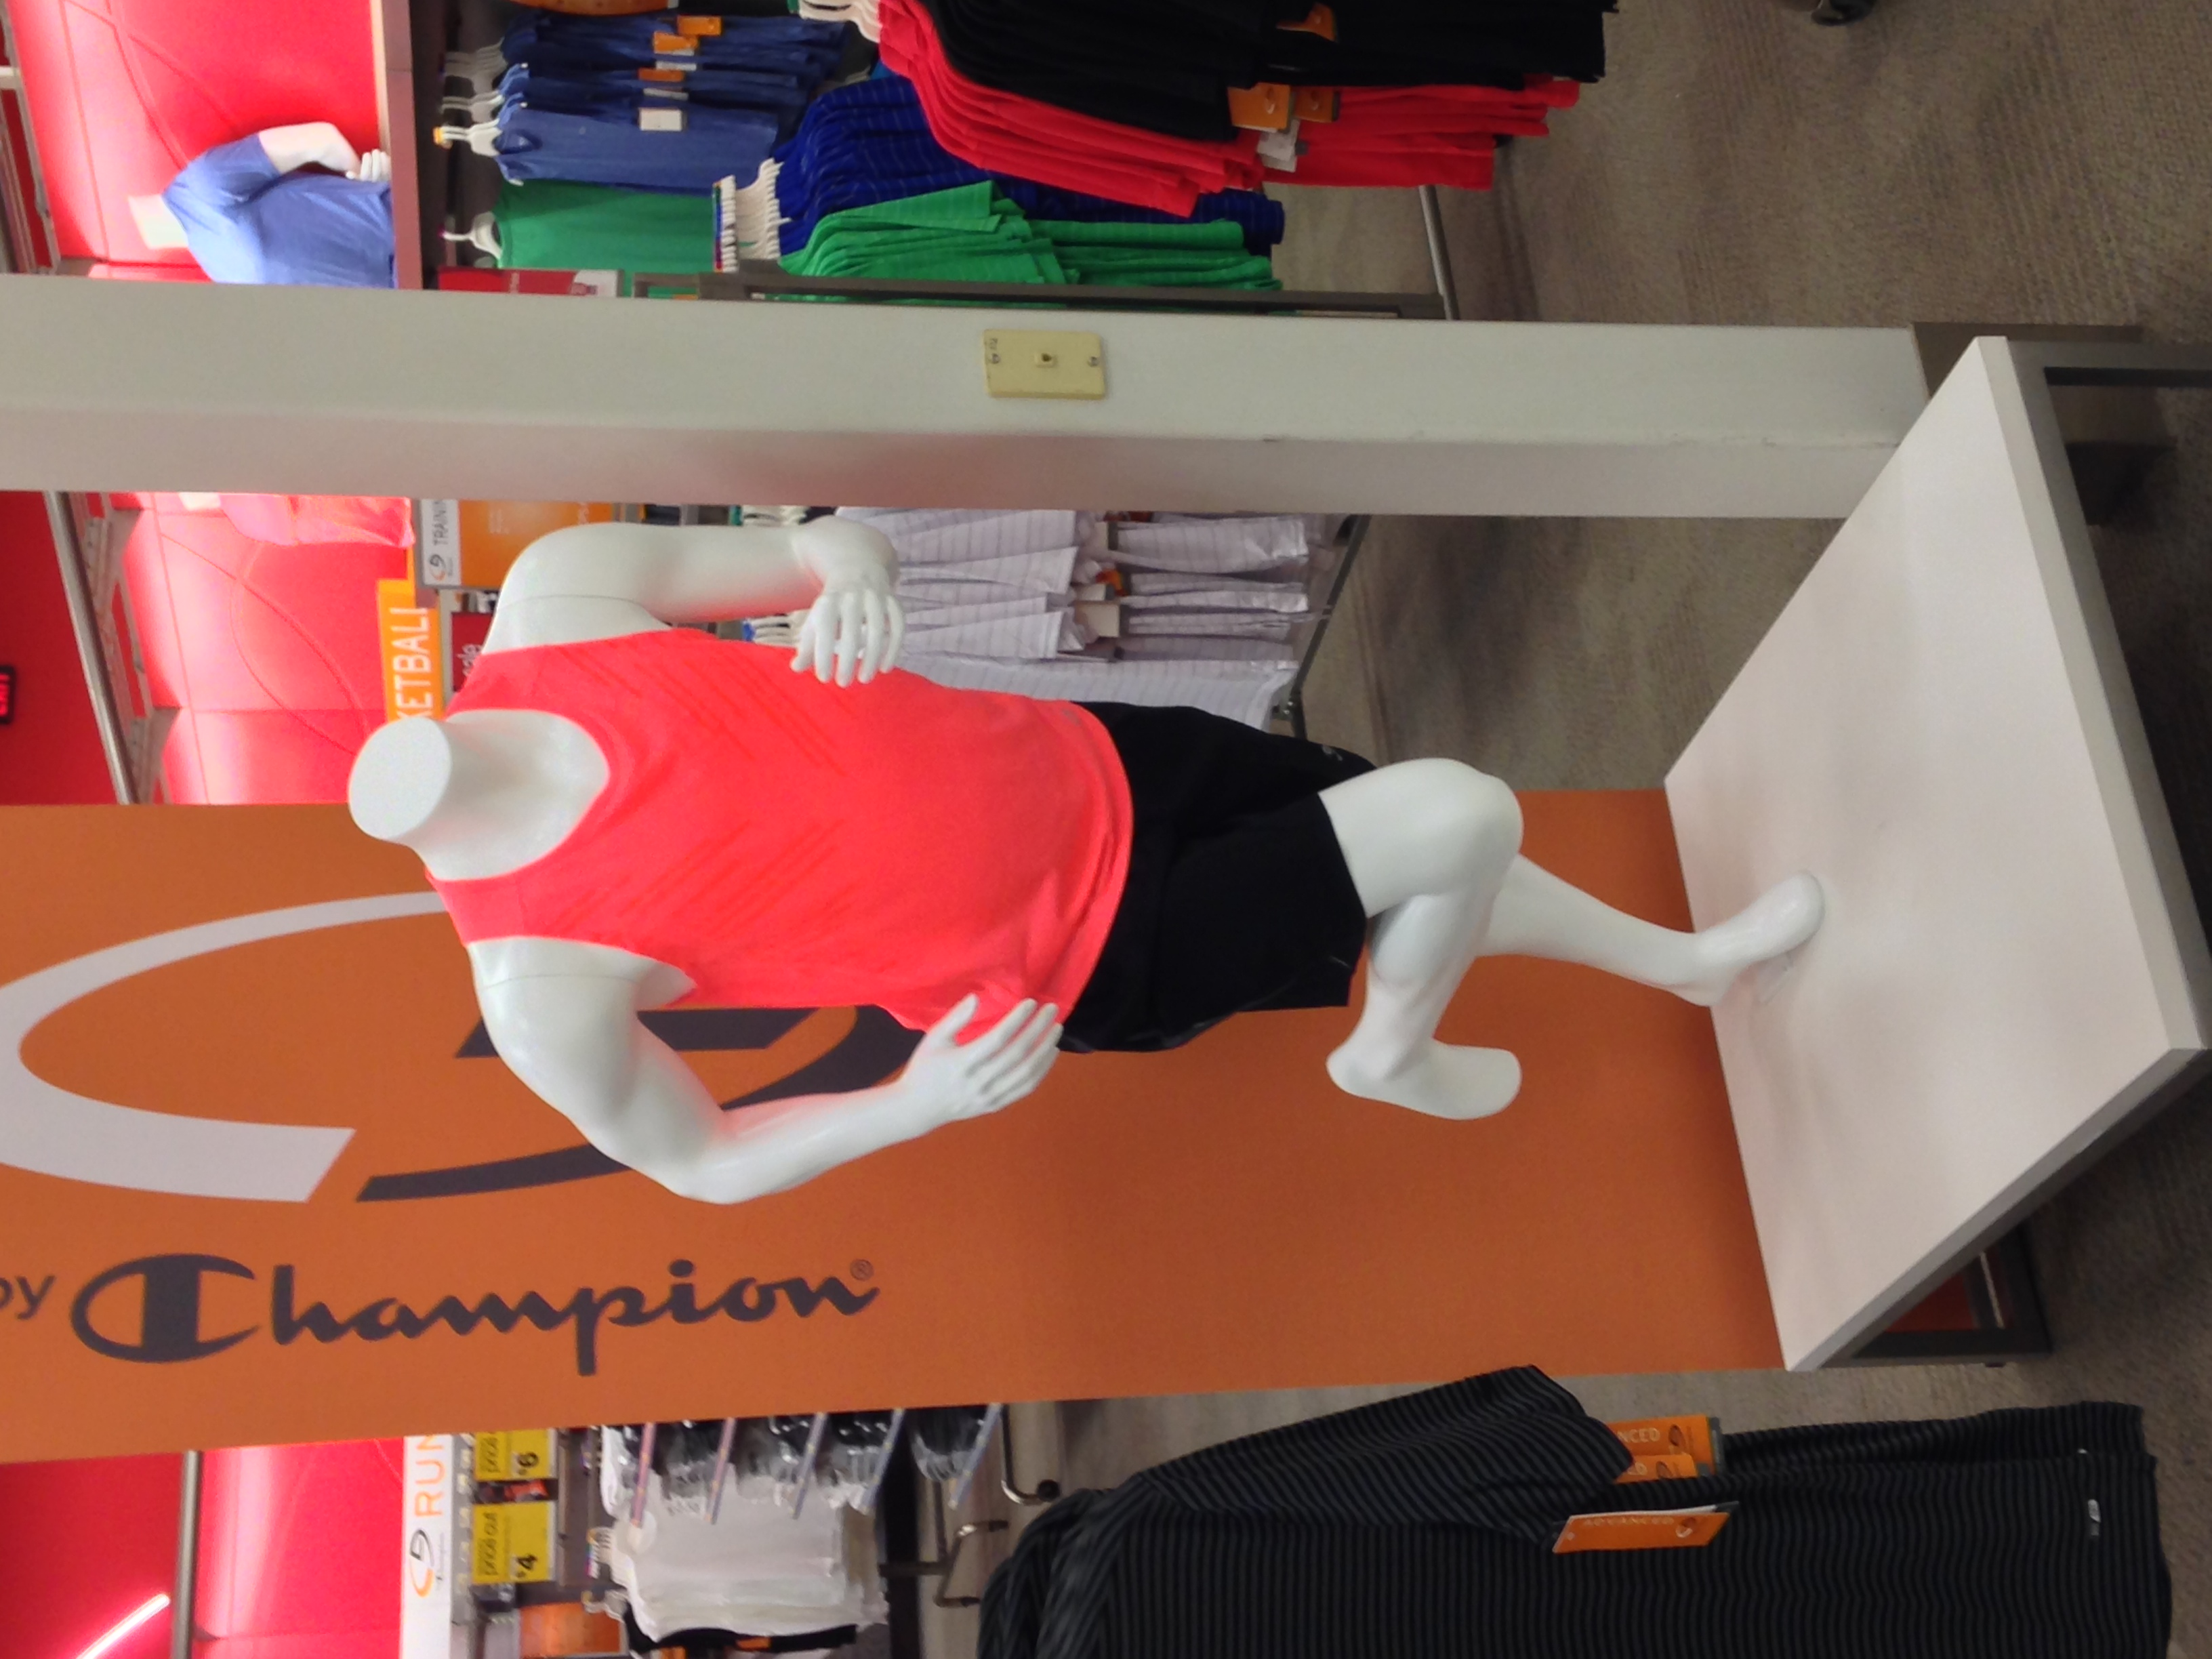 Also in the mens department we have a headless running man!